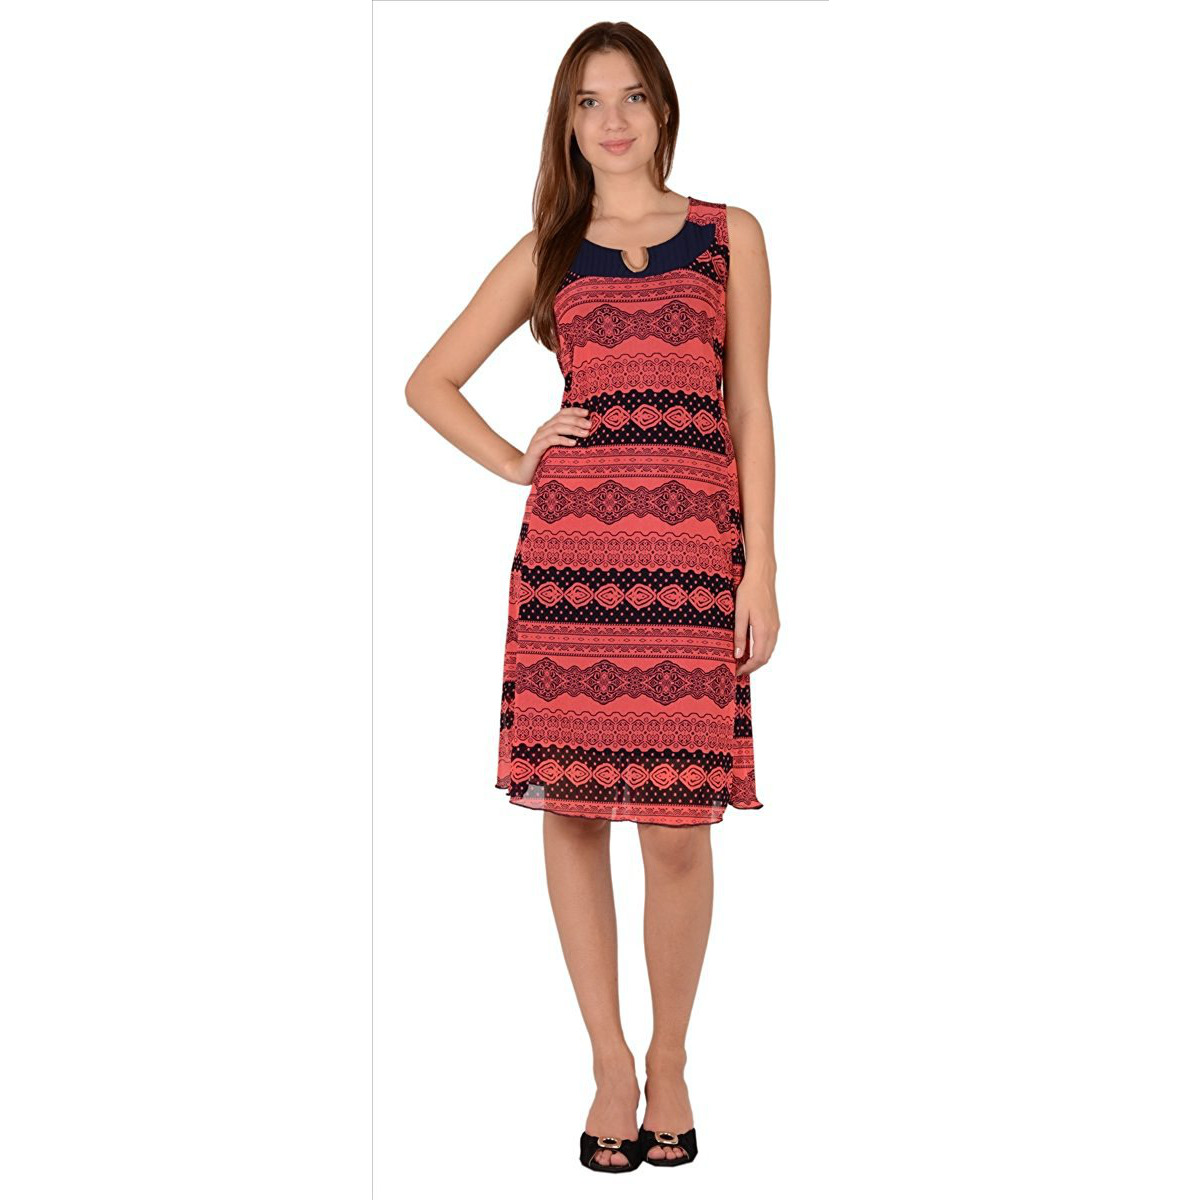 Sns Net Short Dress Tunic Top For Women Printed With Scoopneck